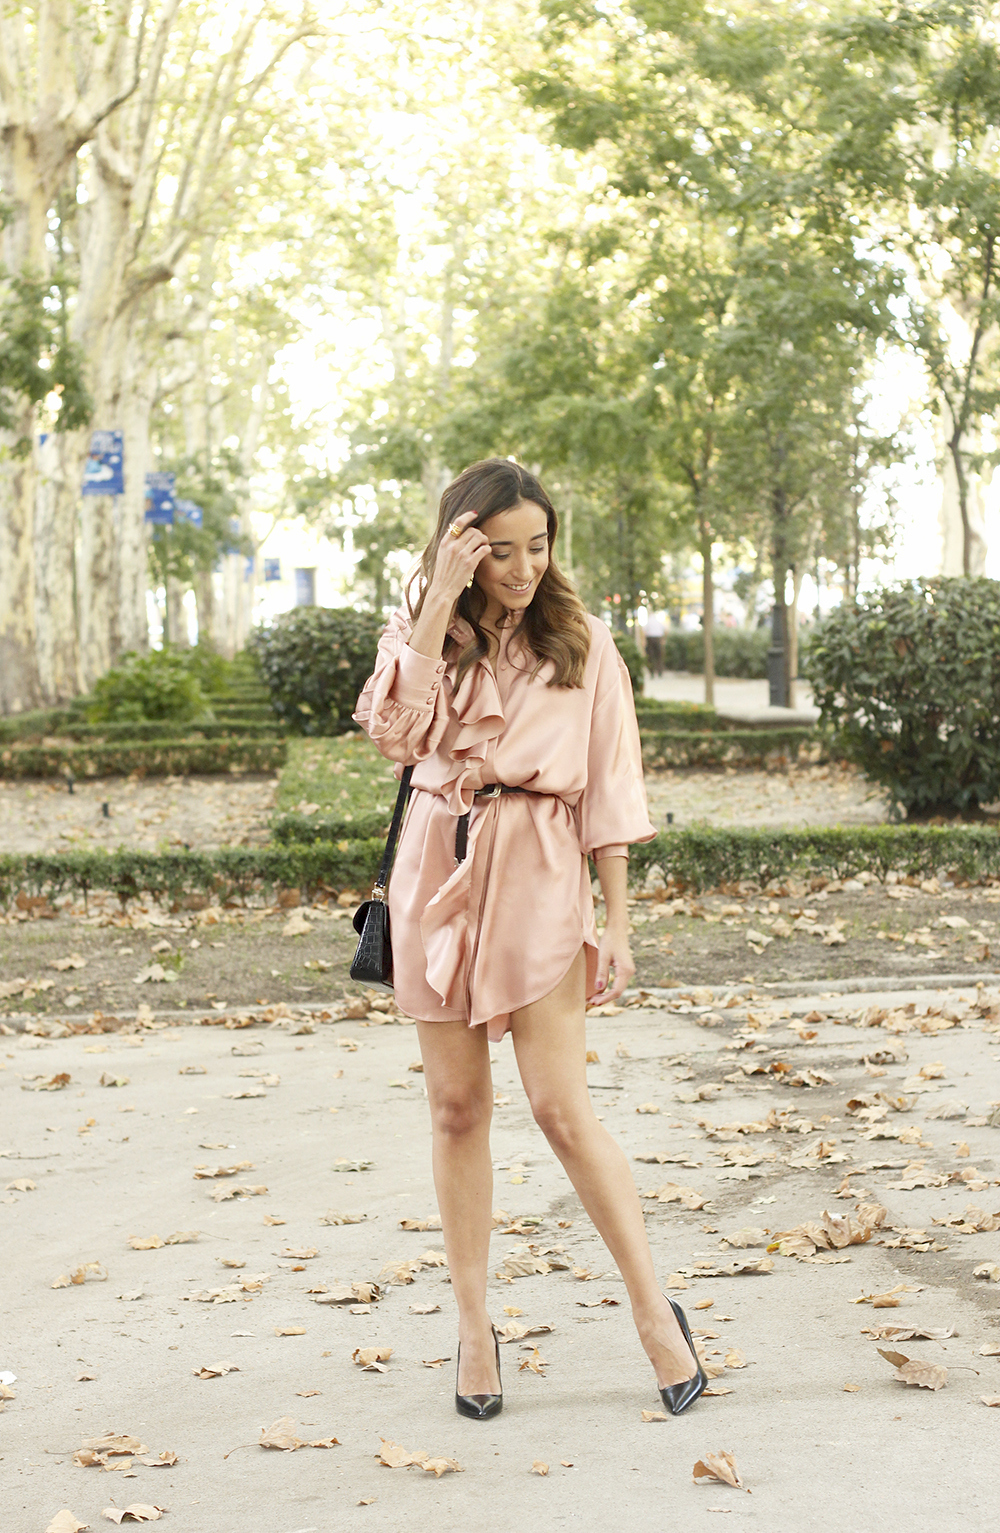 Pink Pale satin dress givenchy bag black heels outfit autumn style fashion02